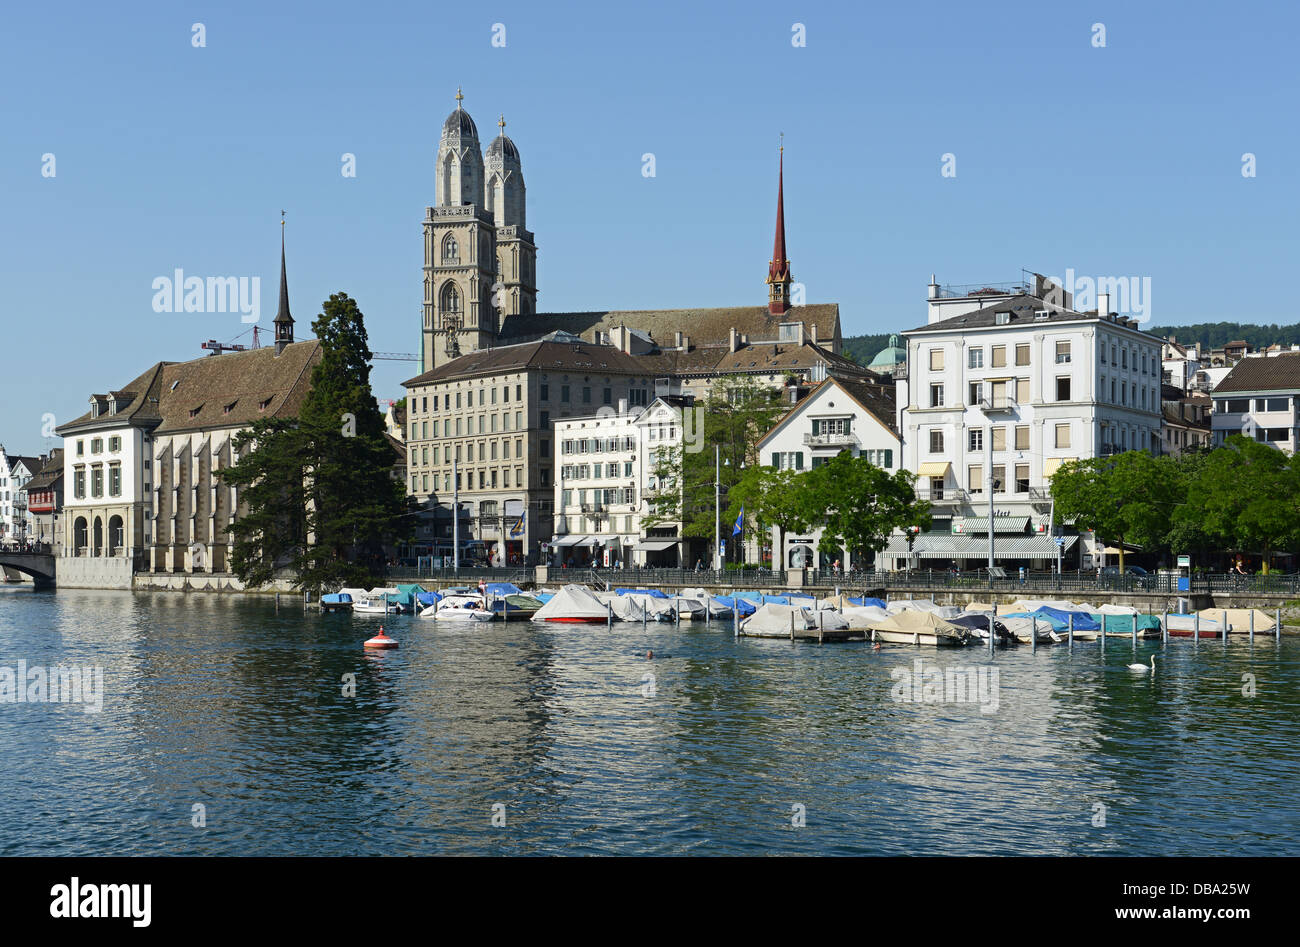 Zurich is the largest city of Switzerland - Stock Image